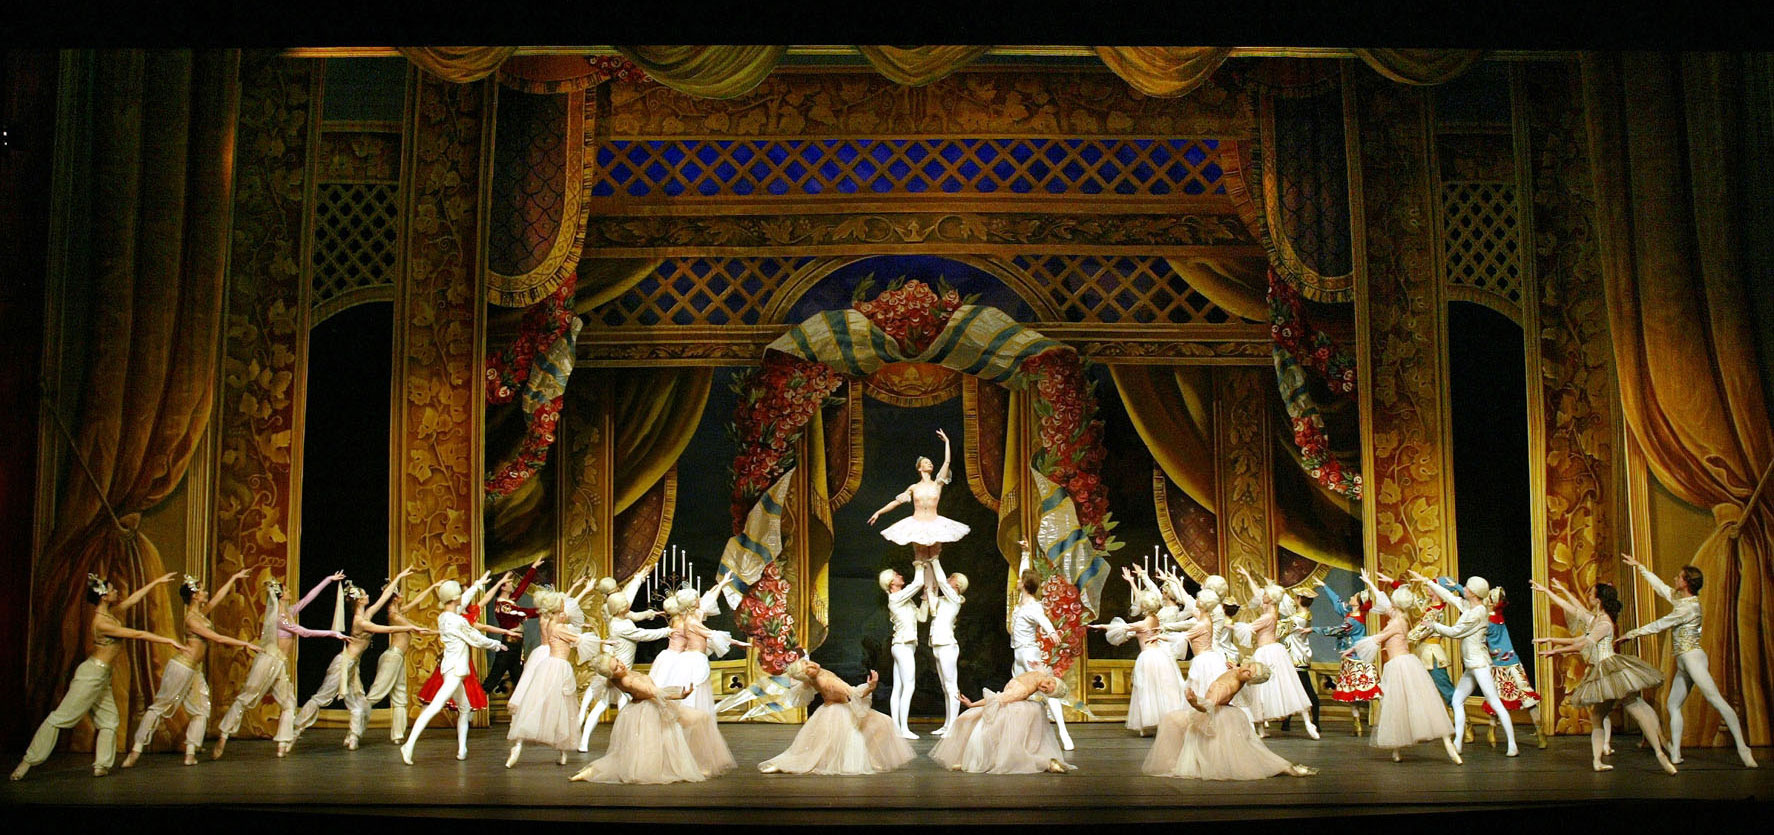 nutcracker-new-york-ballet  The Nutcracker's 120th anniversary celebrated in Google doodle nutcracker herm1b